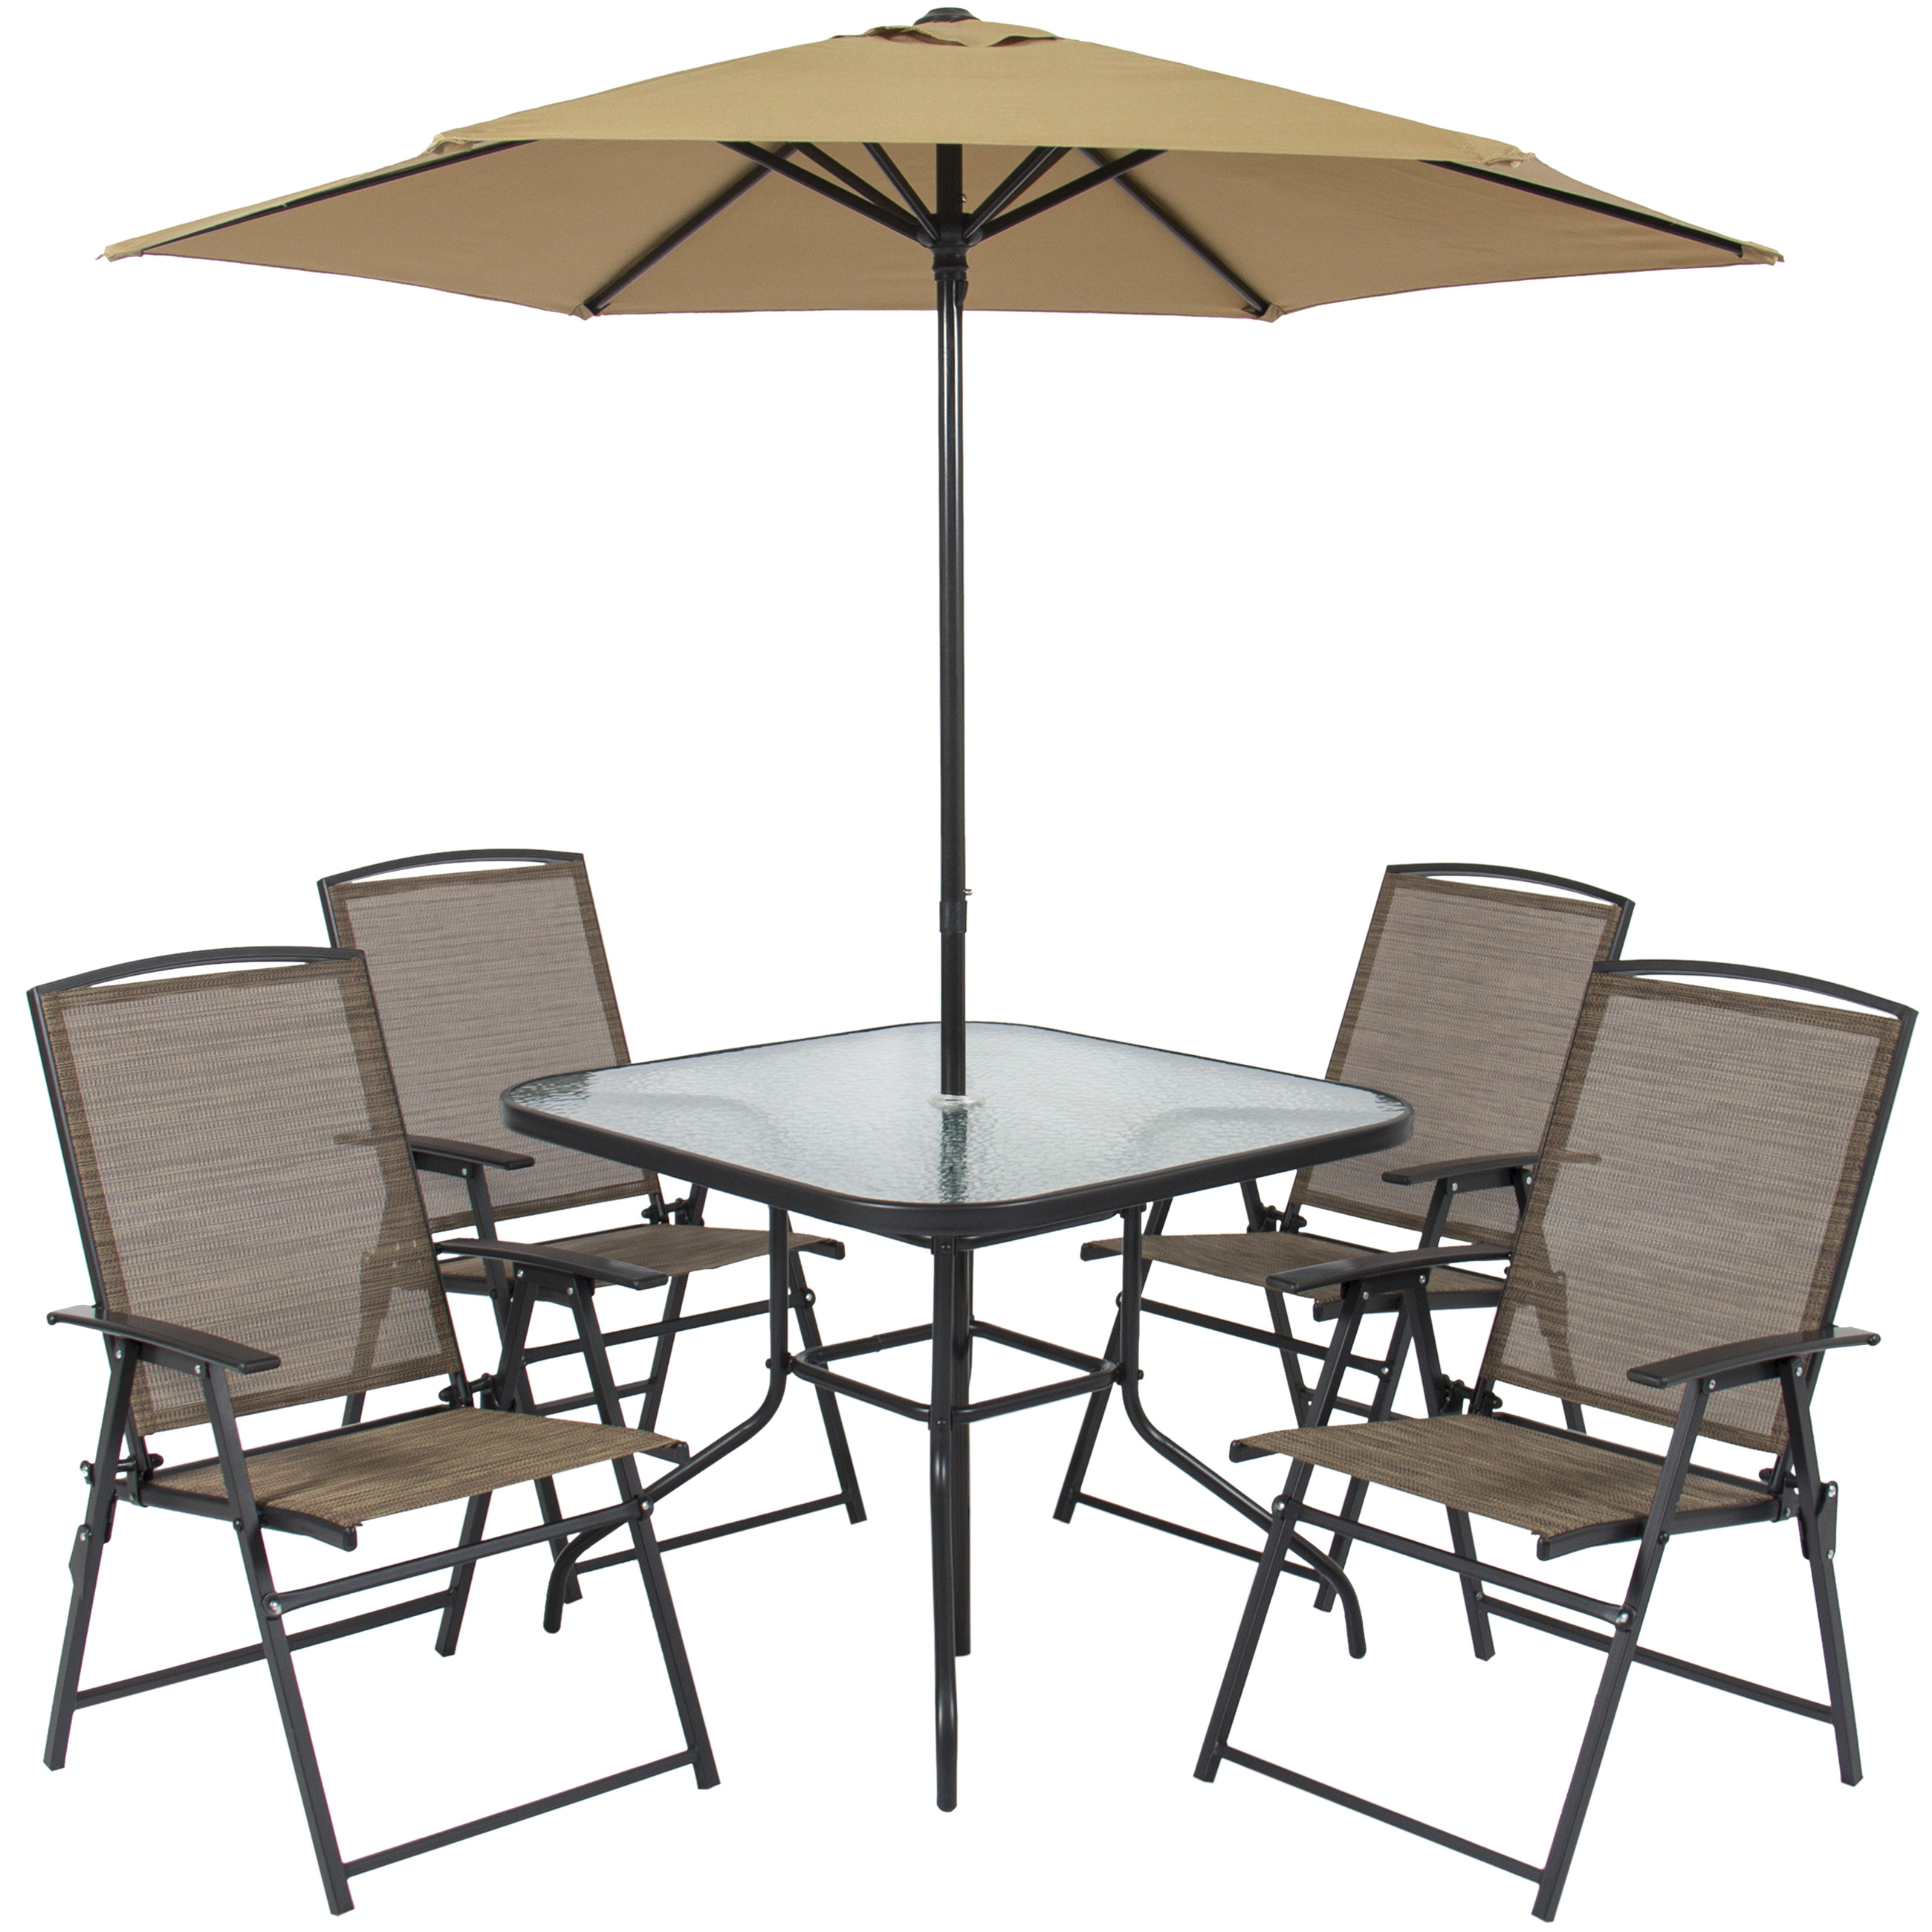 Best Choice Products 6-Piece Outdoor Folding Patio Dining Set w/ Table, 4 Chairs, Umbrella, and Built-In Base -Tan